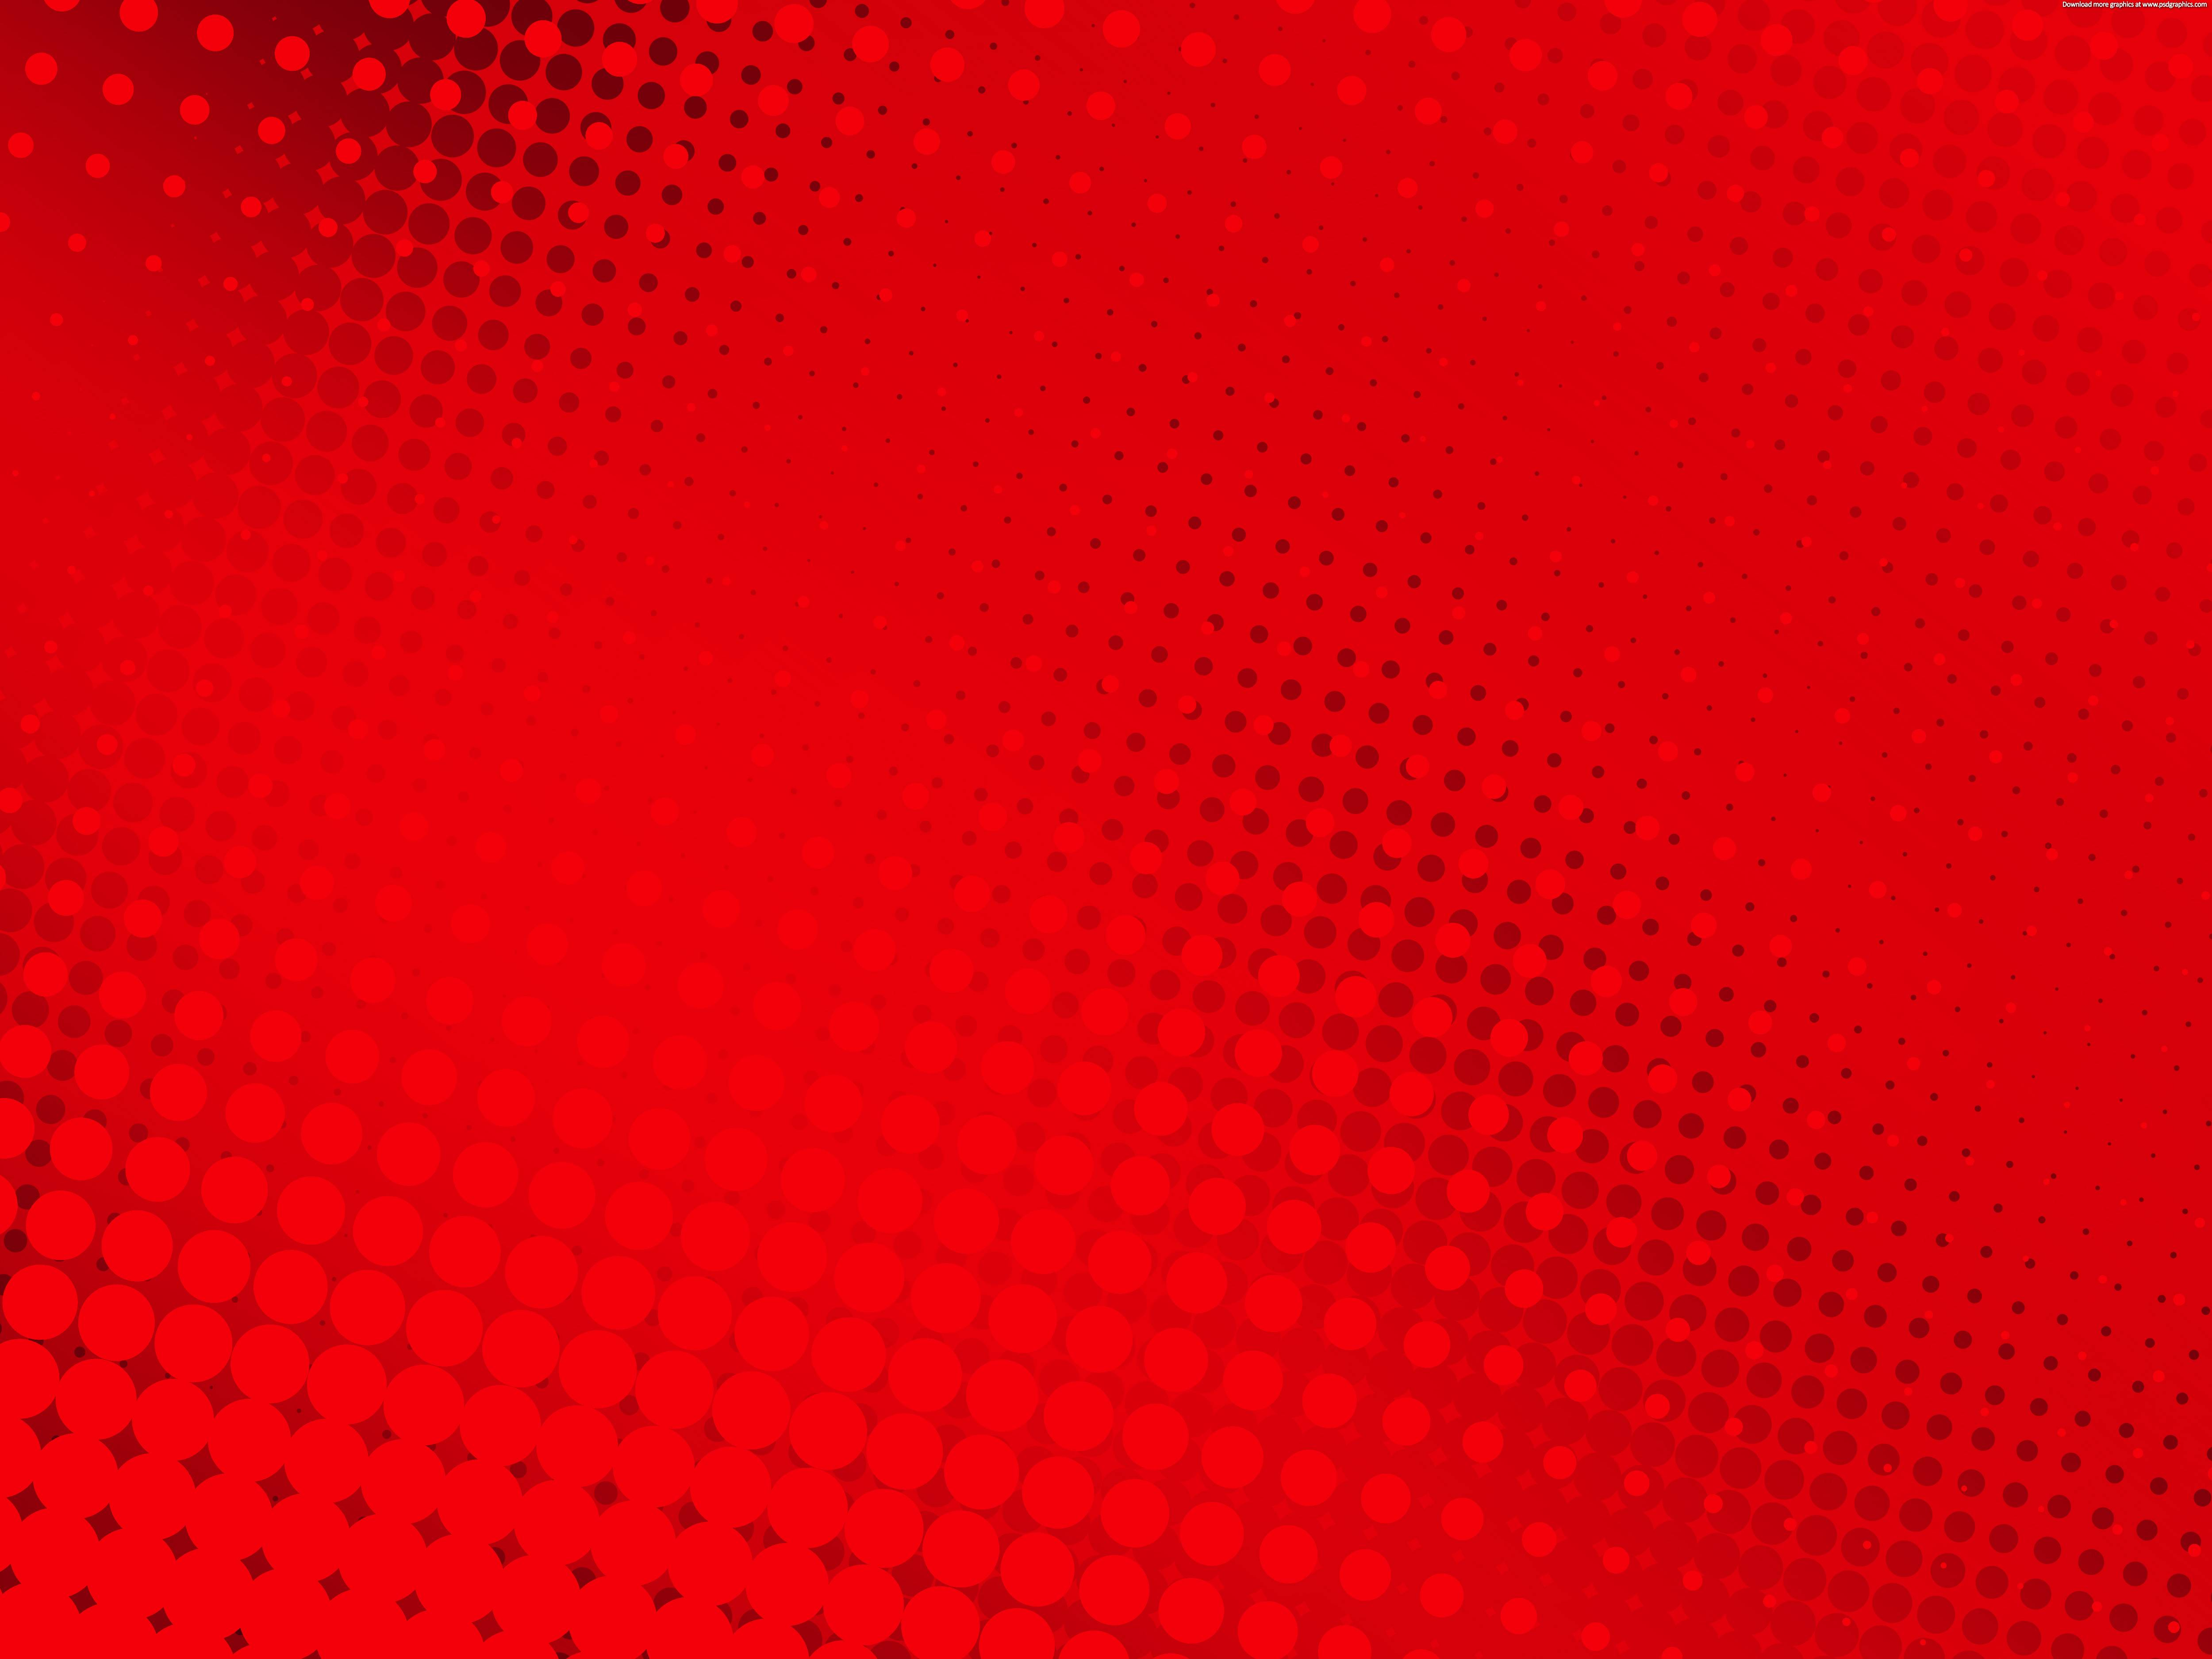 Red Backgrounds Image - Wallpaper Cave